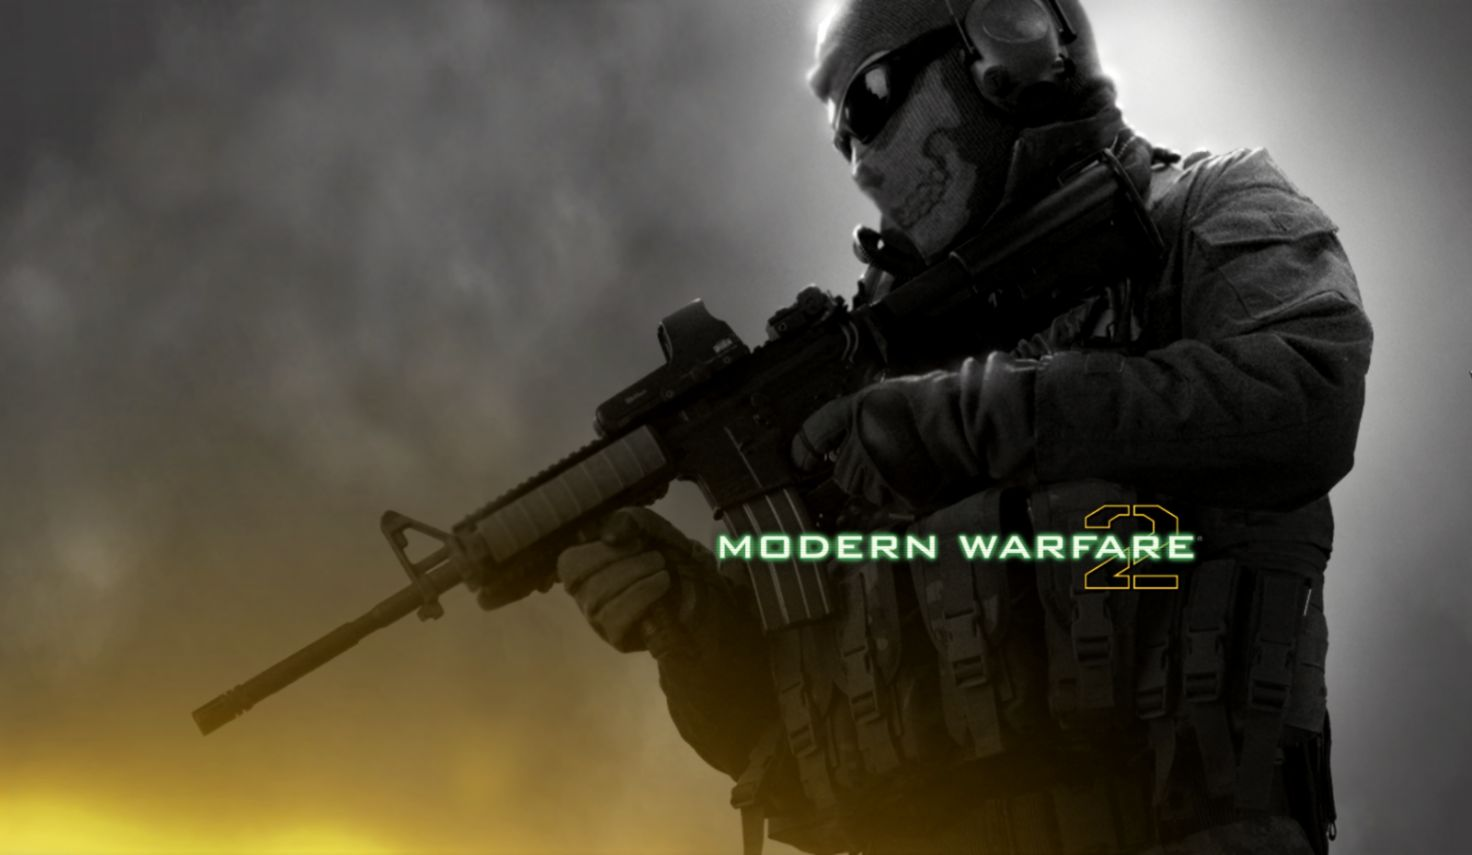 Download Call Of Duty Modern Warfare Wallpaper 2019